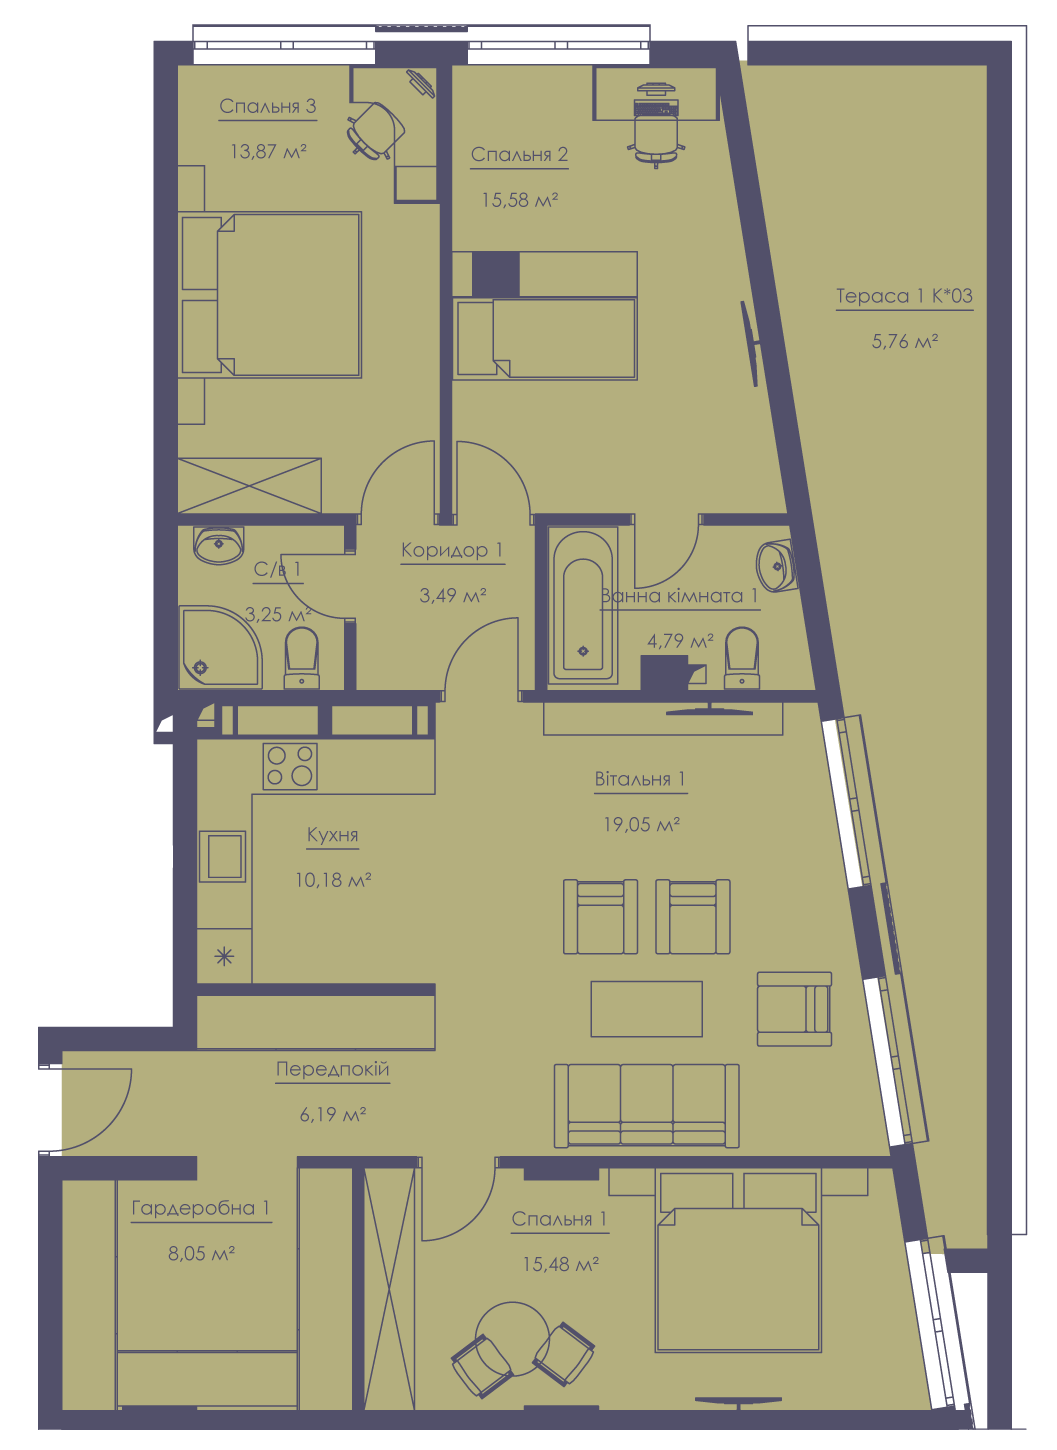 Apartment layout KV_67_4g_1_1_11-1